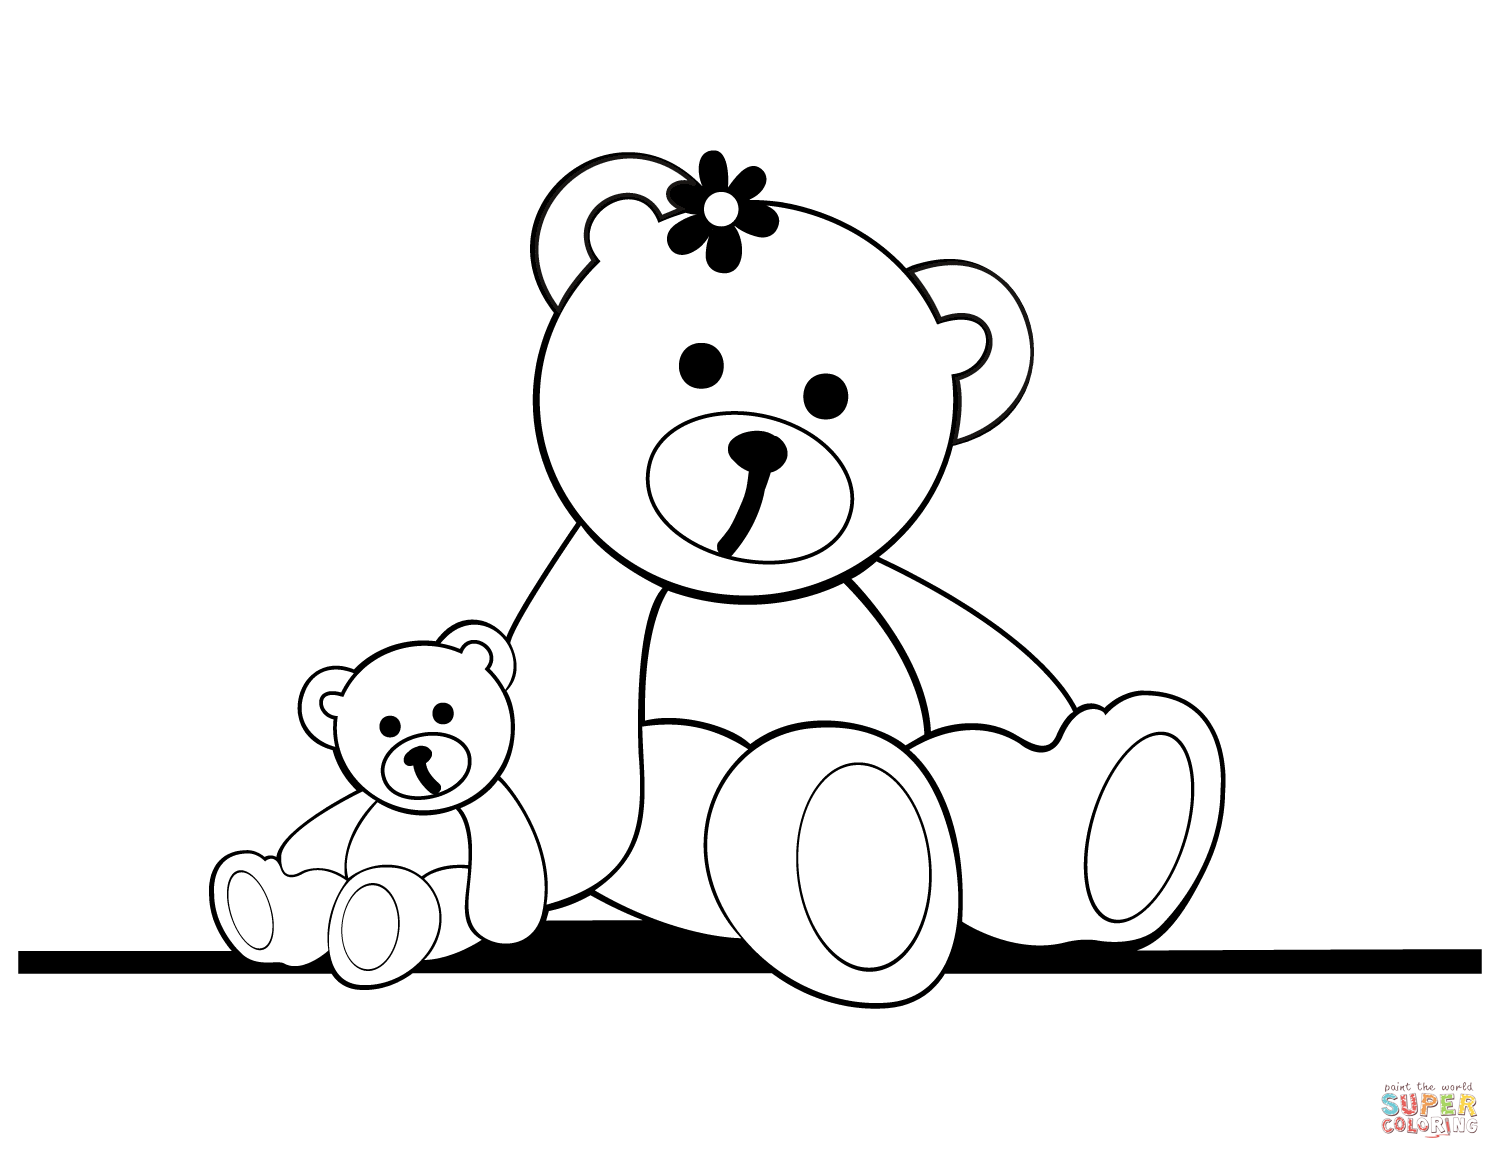 Teddy Bear Coloring Pages For Adults